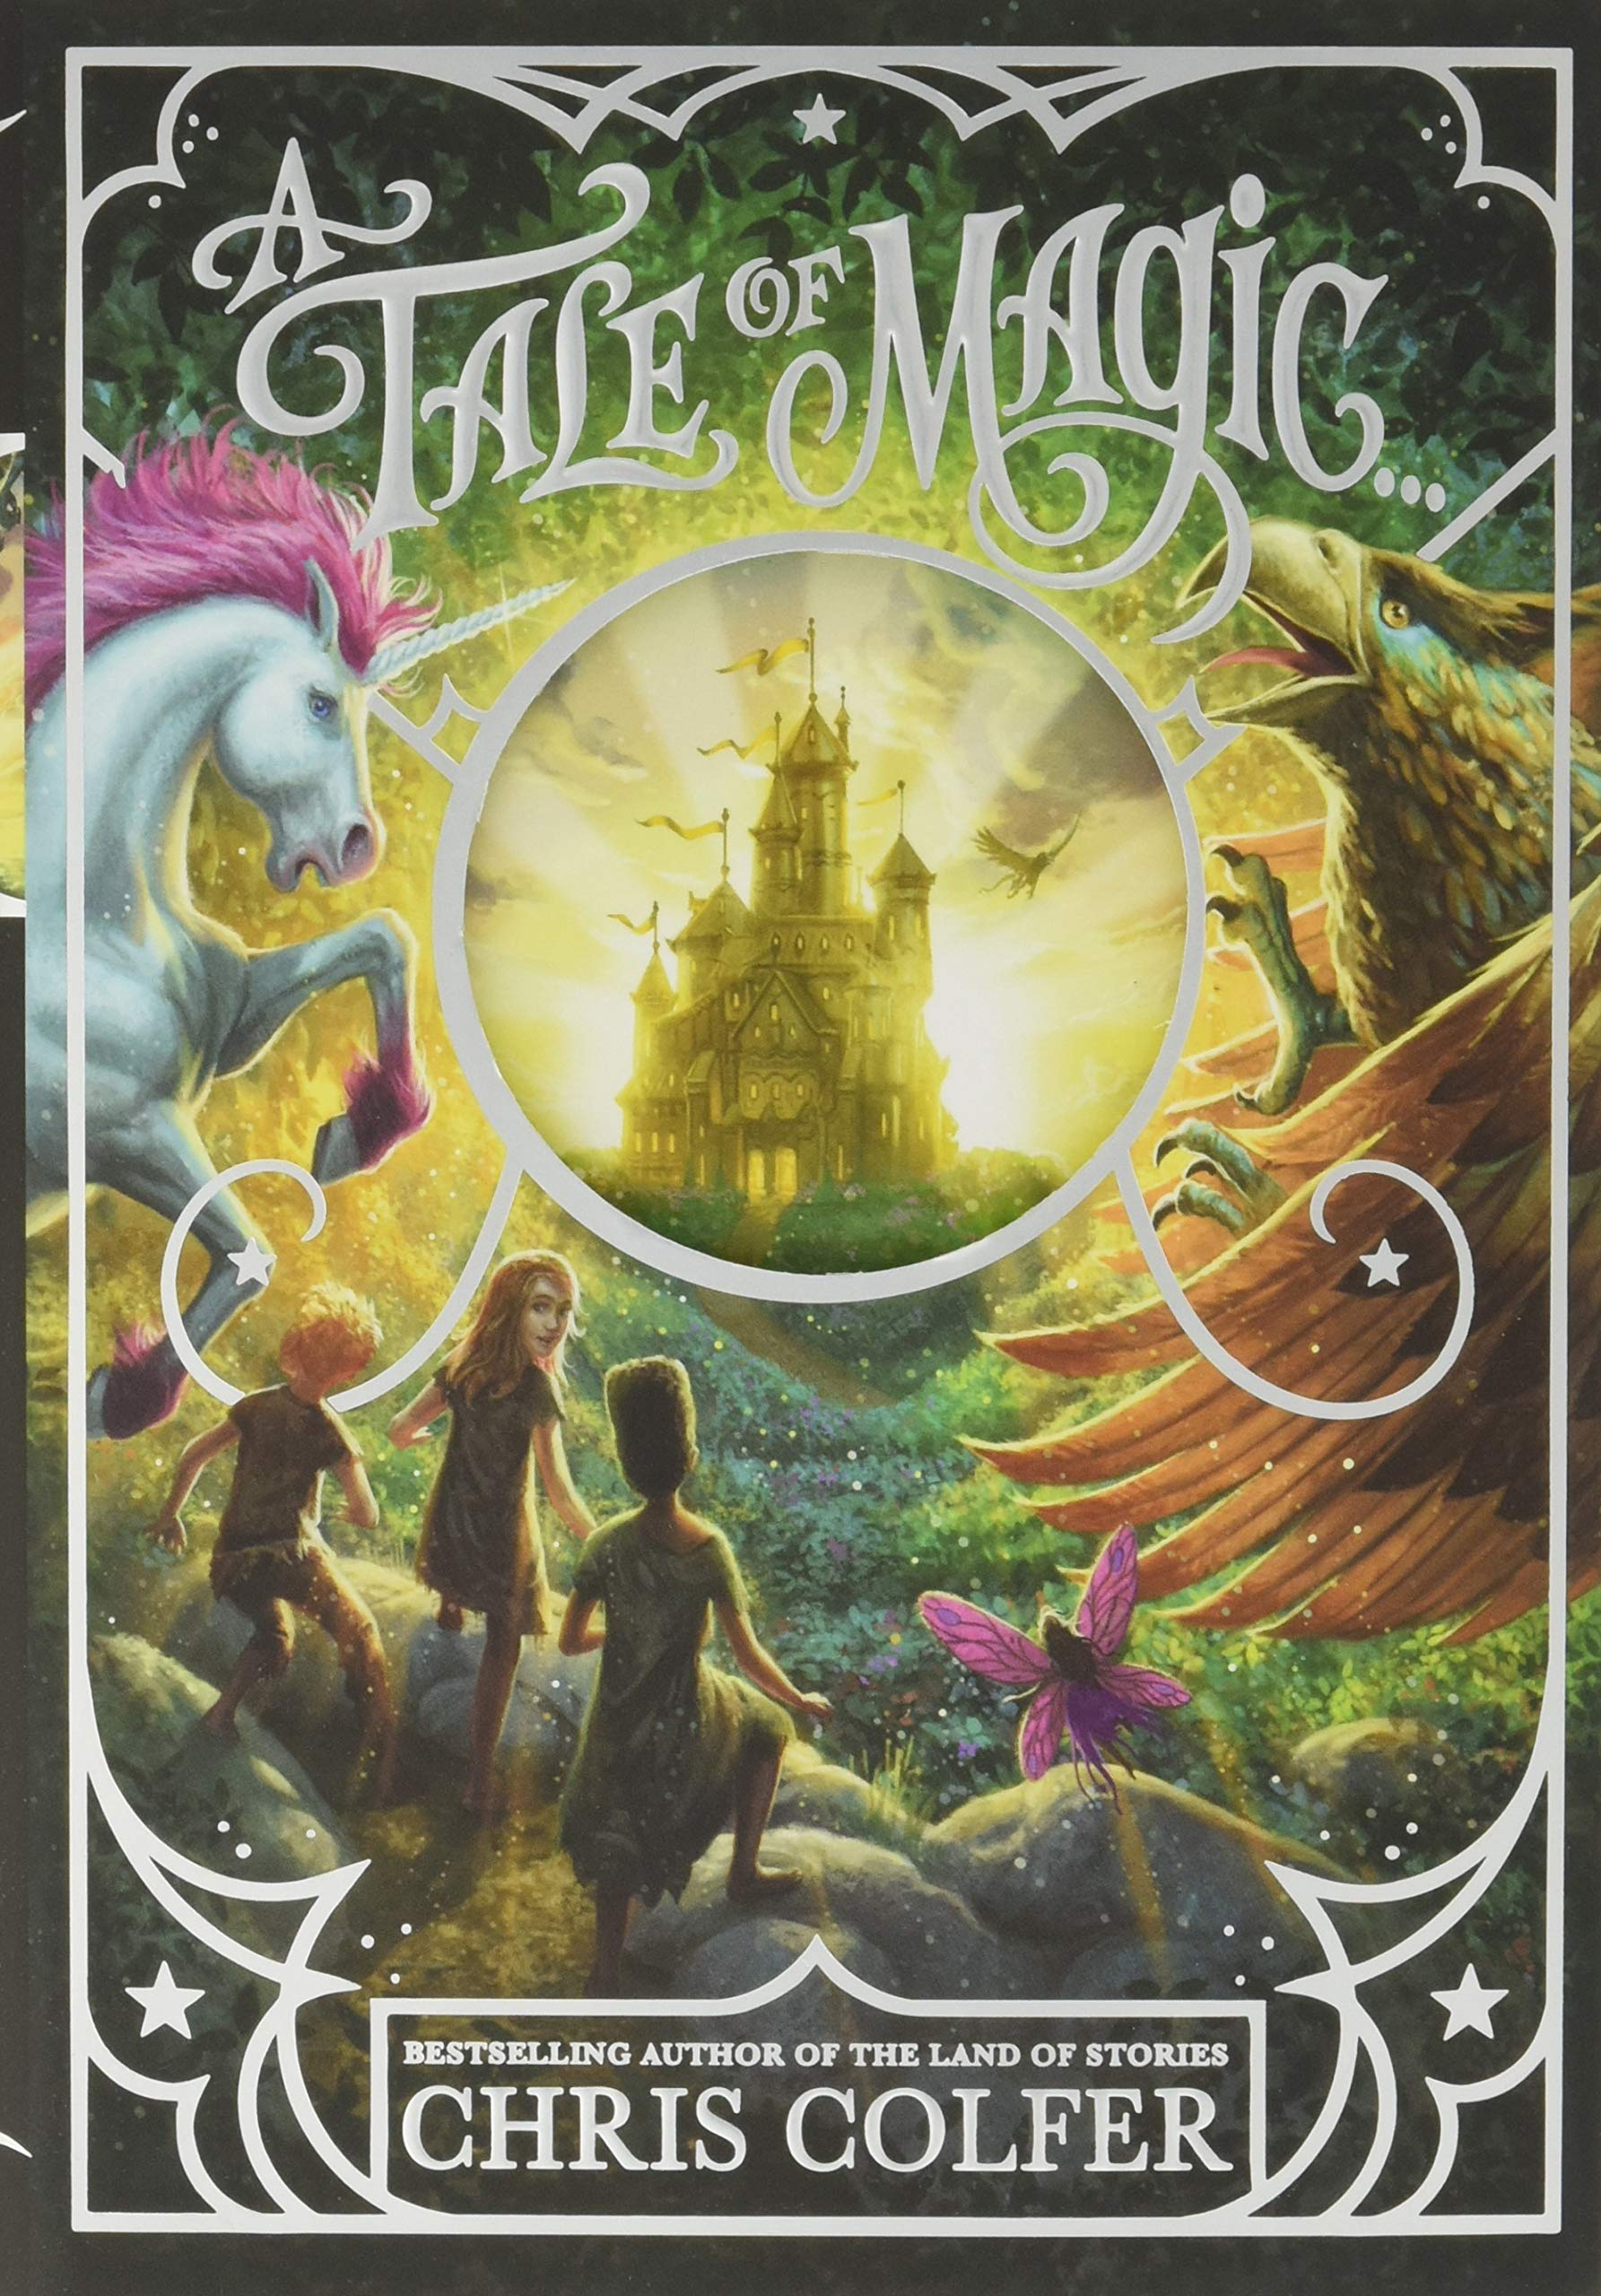 Image result for a tale of magic cover chris colfer